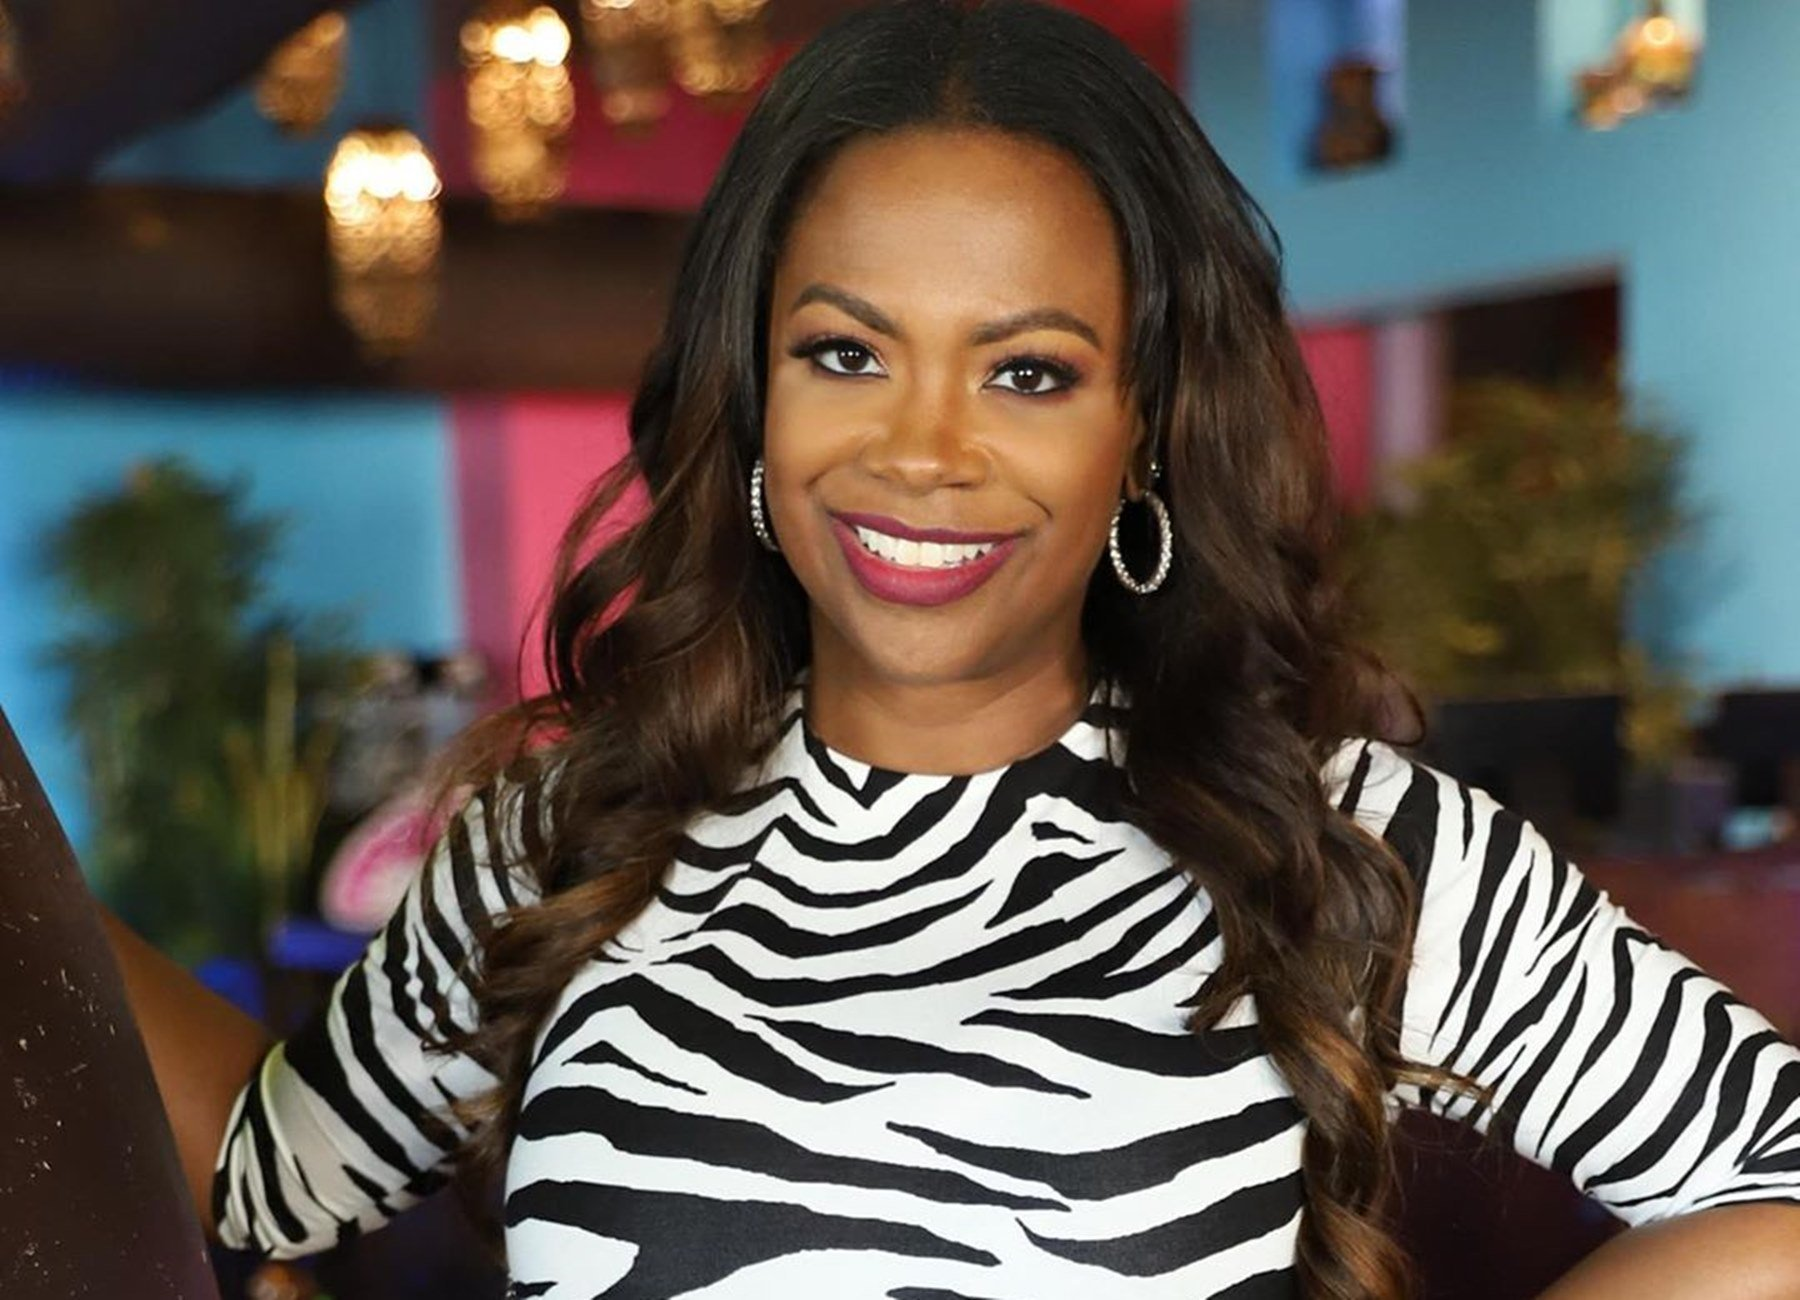 Kandi Burruss Flaunts A New Hairdo In This Video And Fans Are Here For It